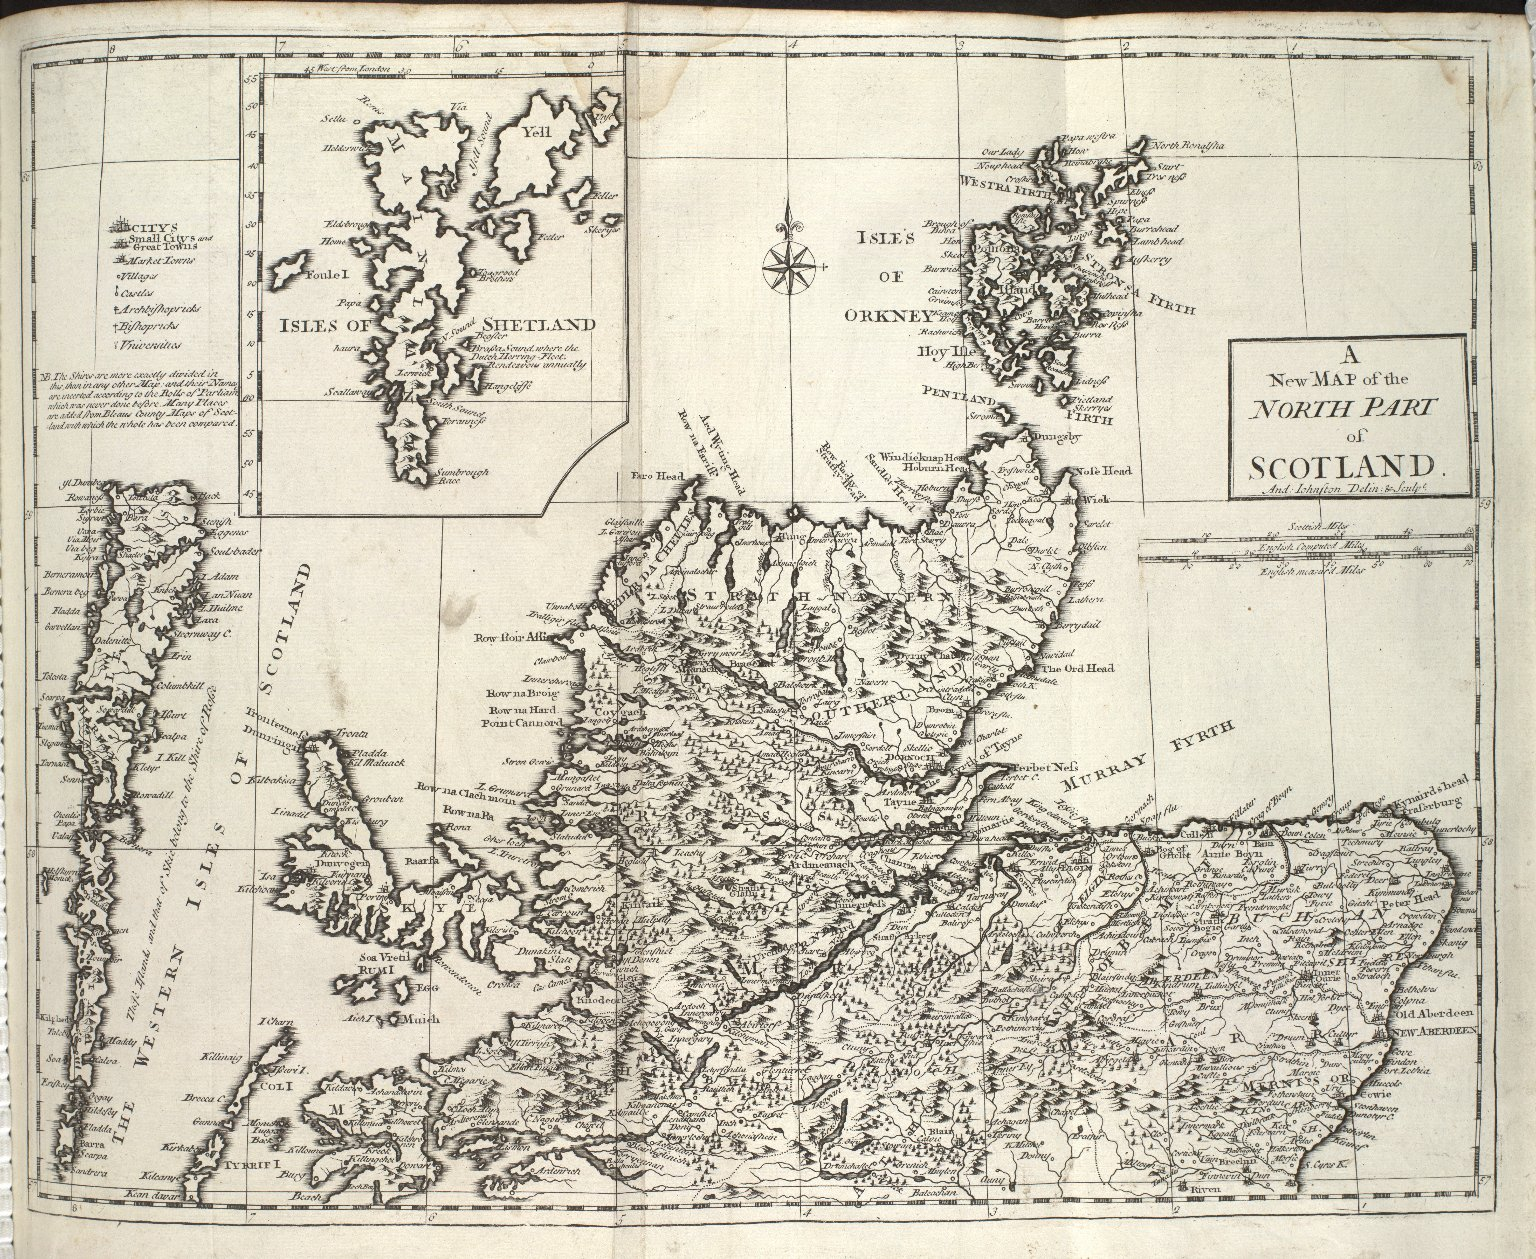 A / New Map of the / North Part / of / Scotland. [1 of 1]